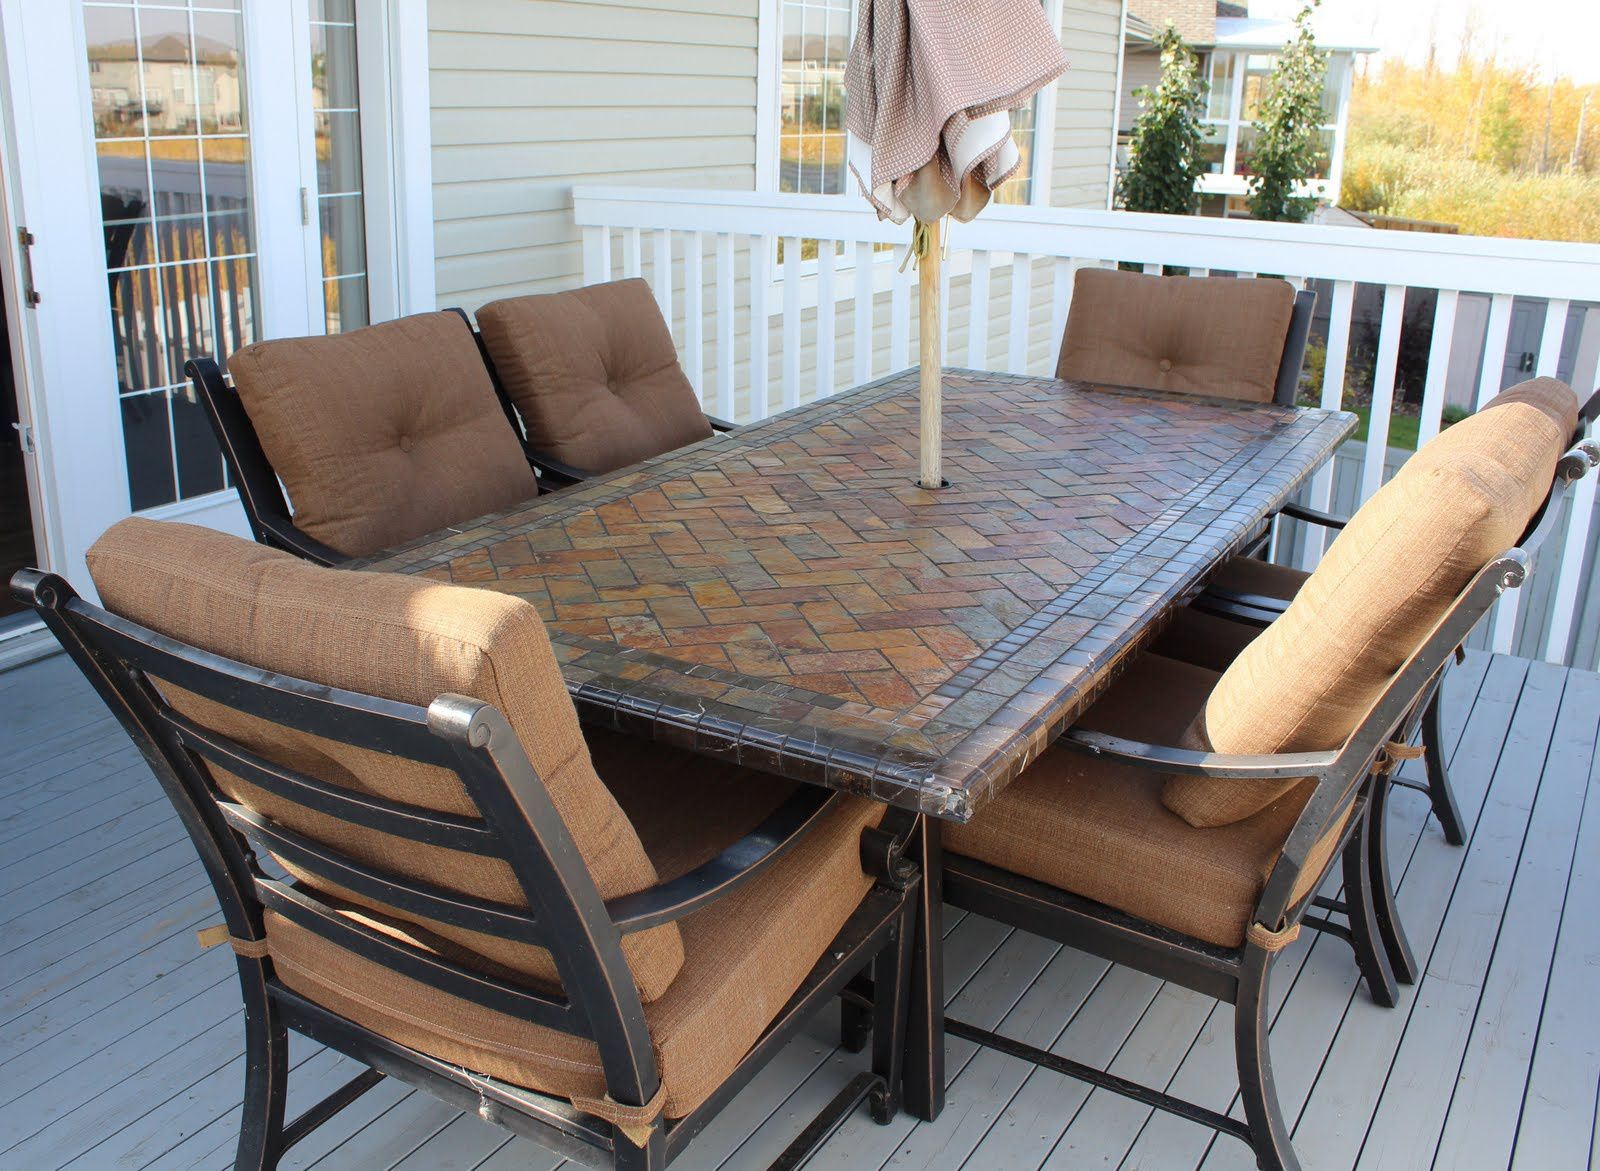 Outdoor Furniture Clearance Costco - Best Furniture Gallery Check